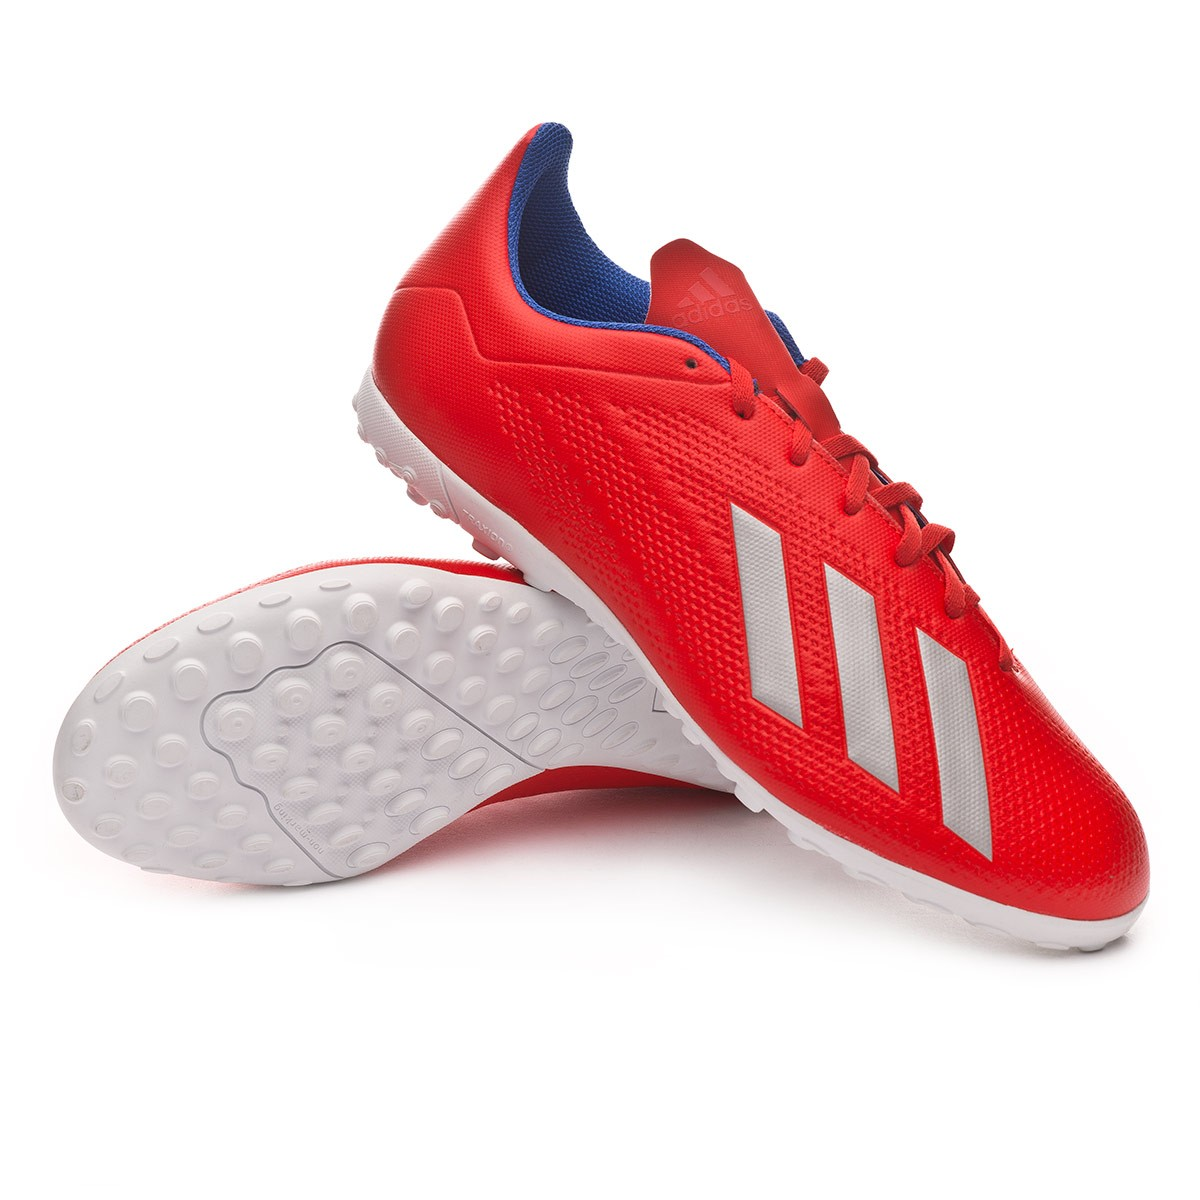 7801824f47194a Football Boot adidas X Tango 18.4 Turf Active red-Silver metallic ...